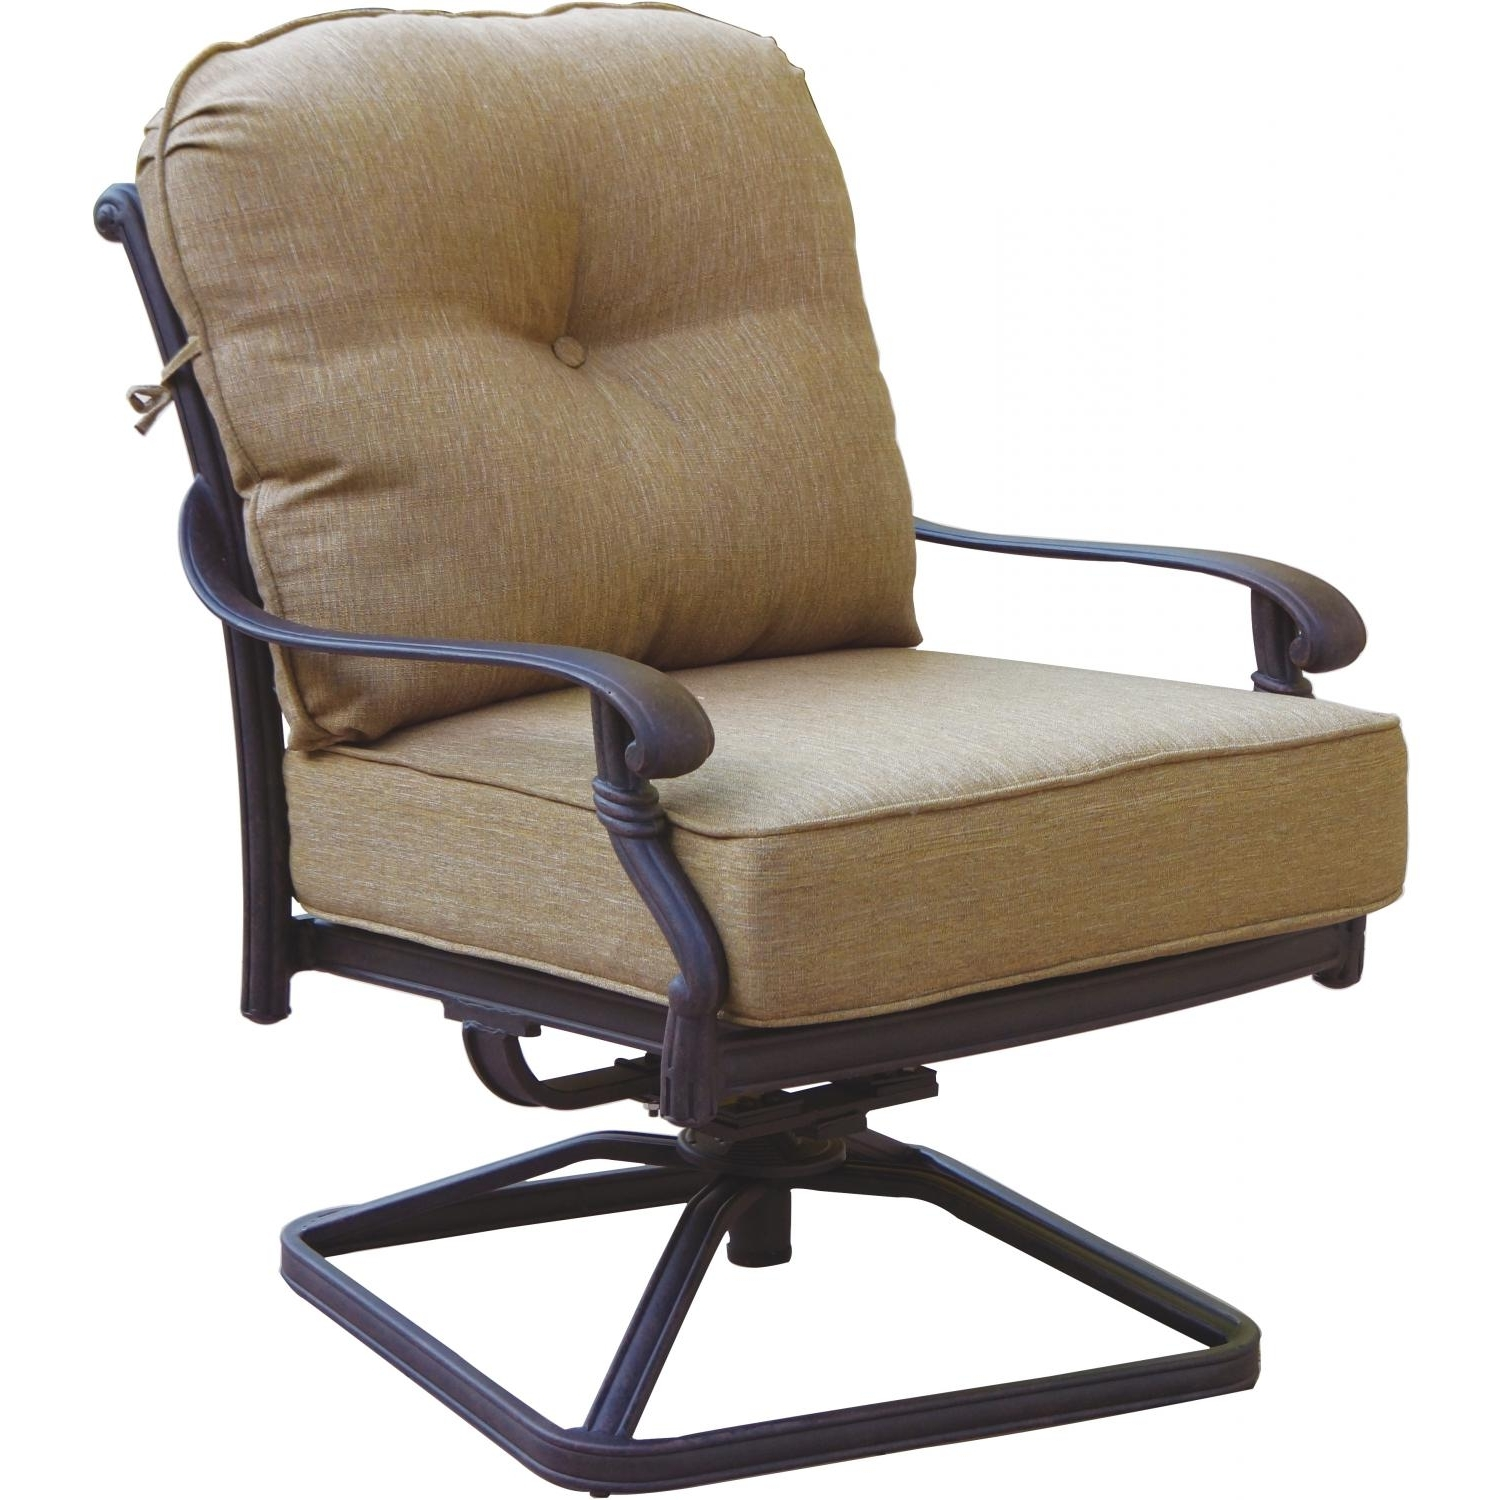 Popular Perfect Pictures Of Wrought Iron Rocker Patio Chairs – Best Home With Regard To Iron Rocking Patio Chairs (View 12 of 20)